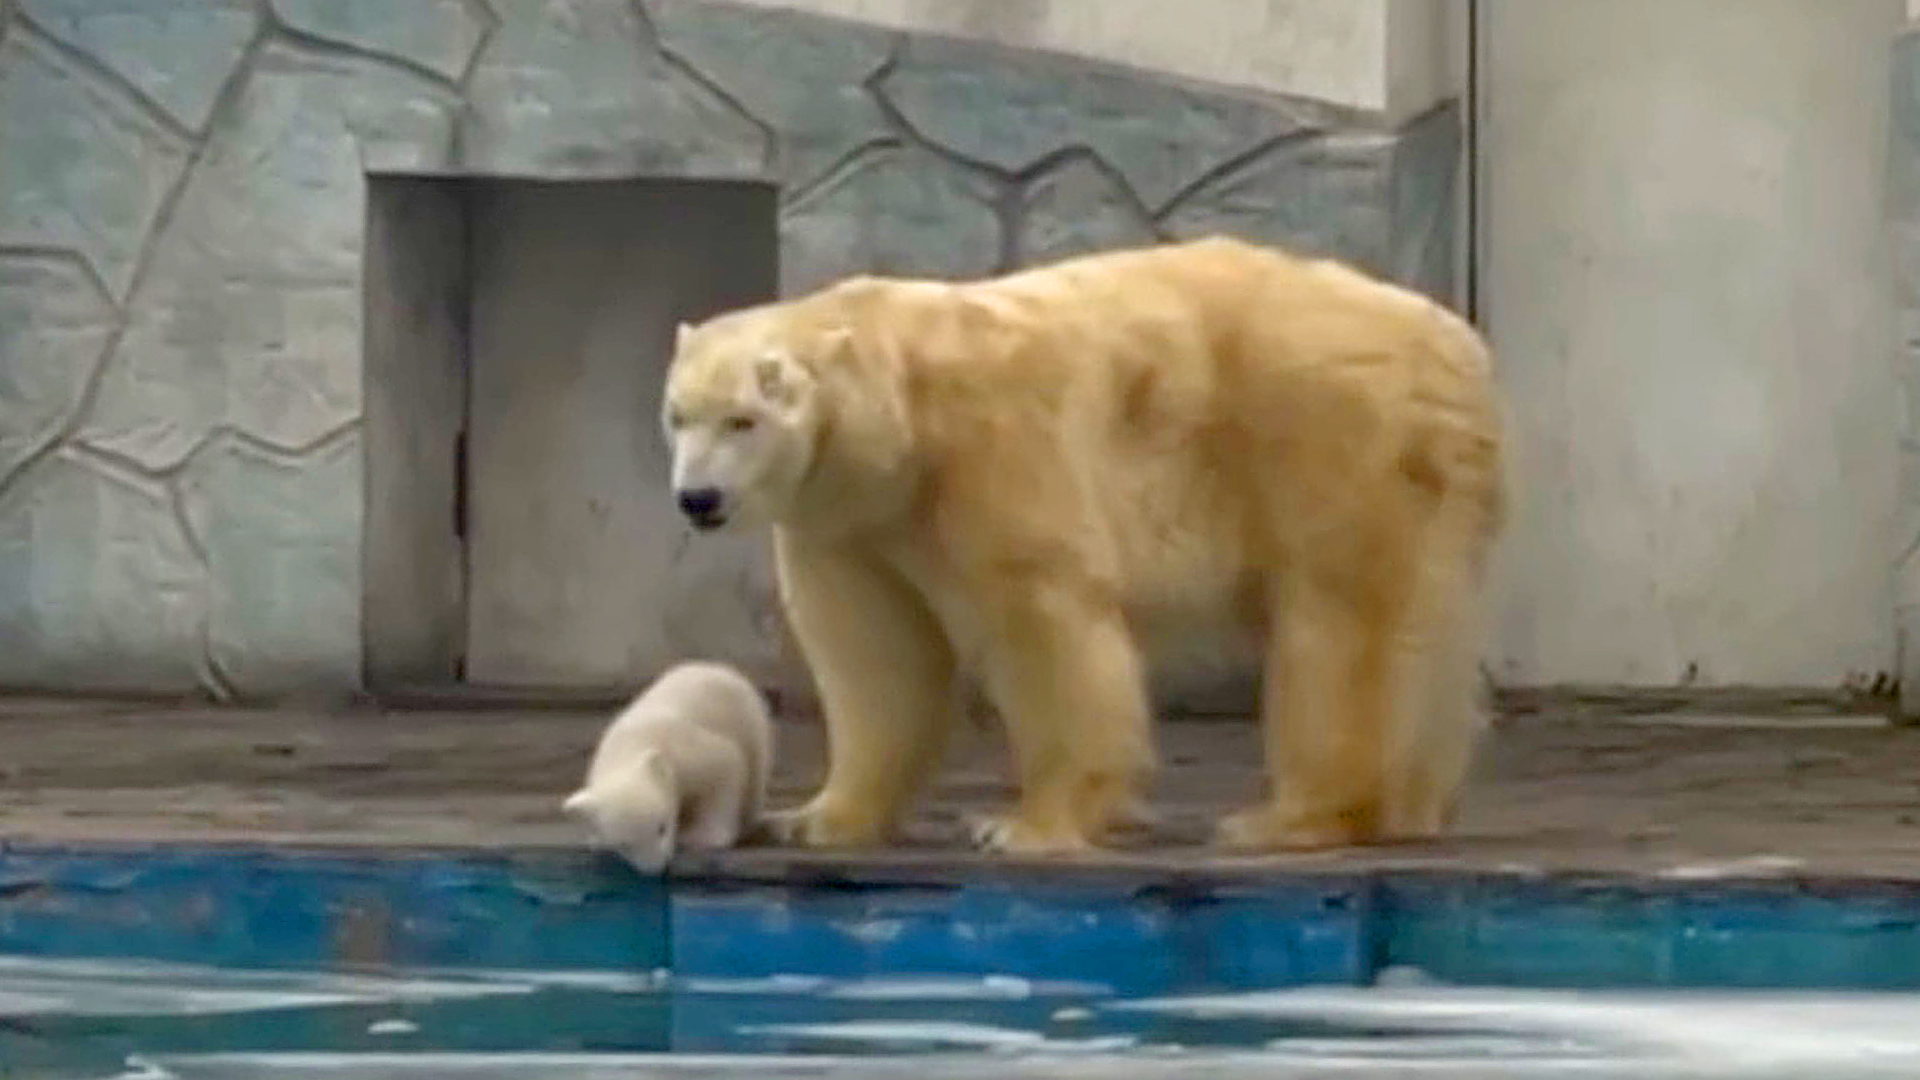 VIDEO: Polar Bear Takes Cute Cub On 1st Outdoor Walk And Stops It Falling In Pool